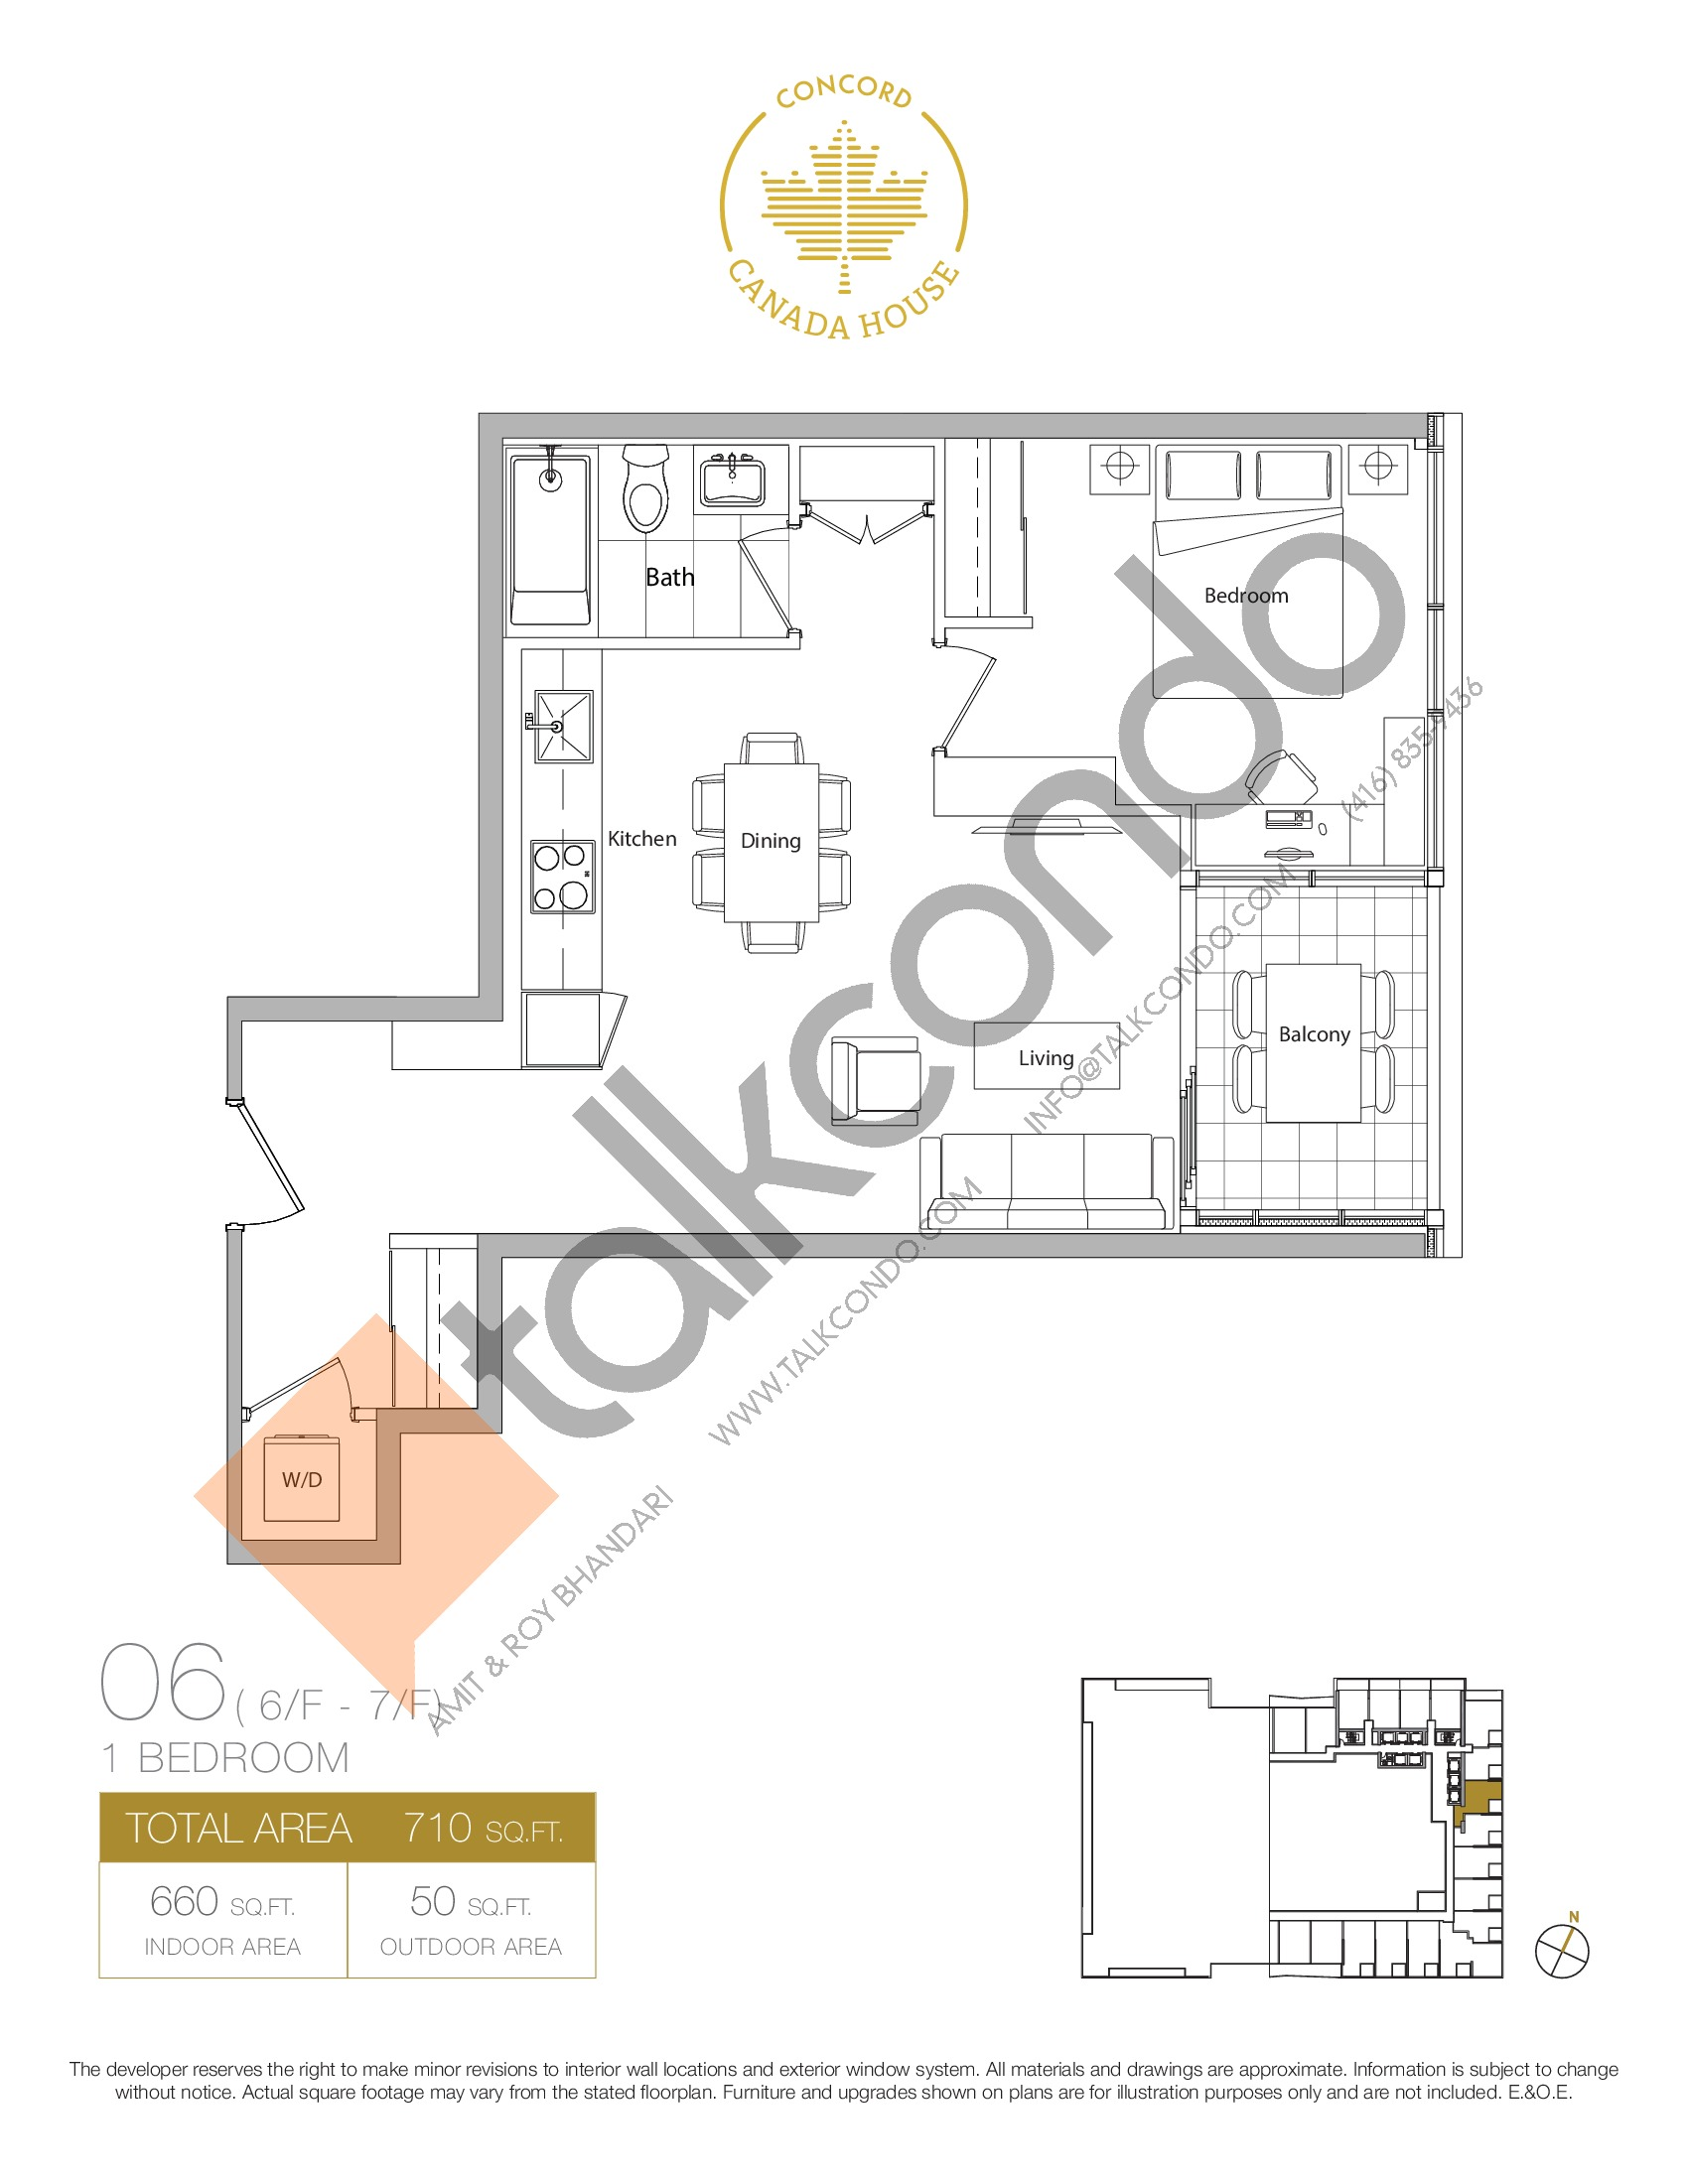 06 - West Tower Floor Plan at Concord Canada House Condos - 660 sq.ft